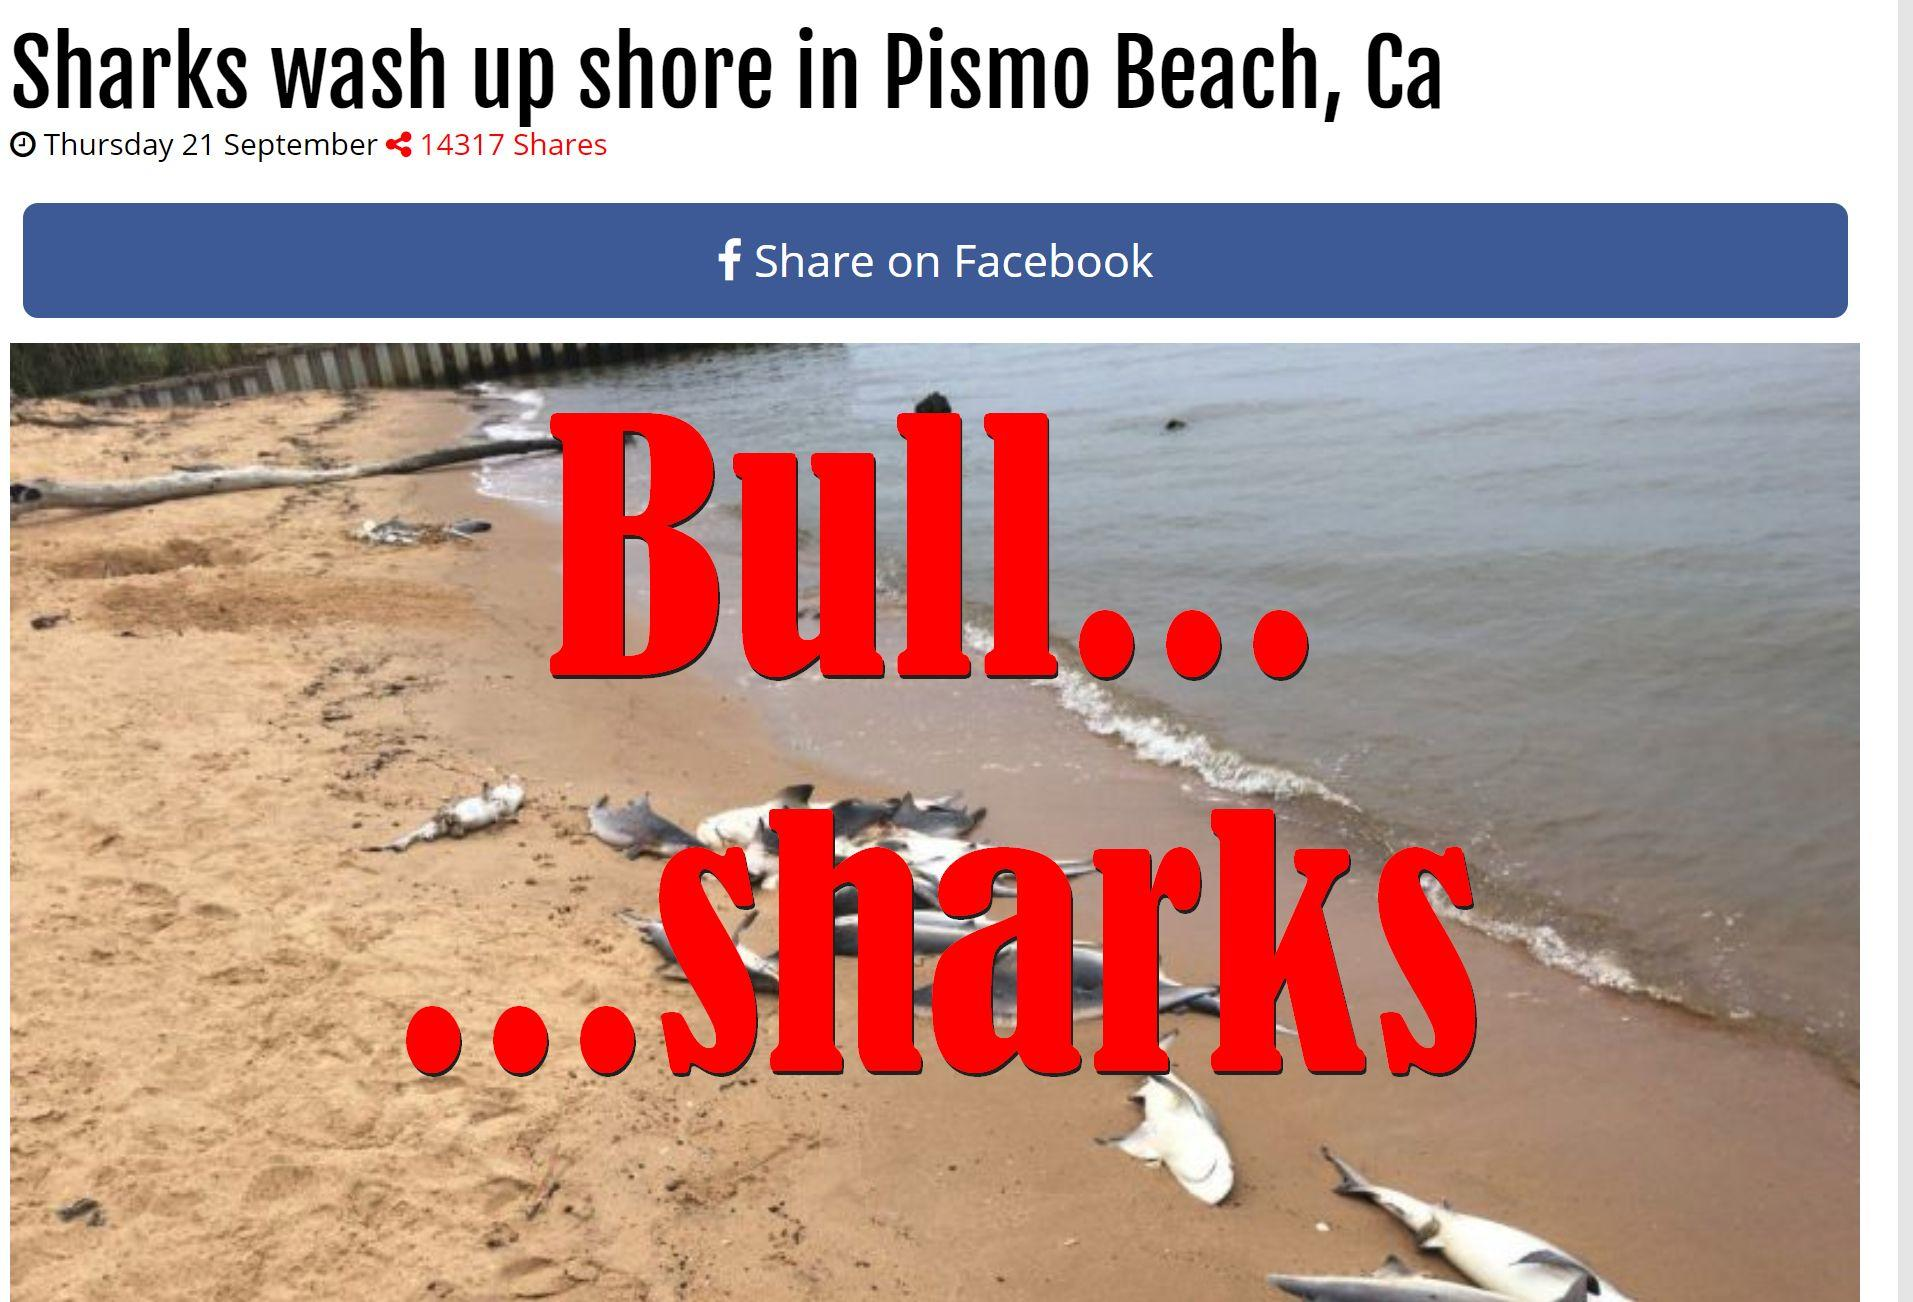 Fake News: Sharks Did NOT Wash Up On Shore In Pismo Beach, Ca